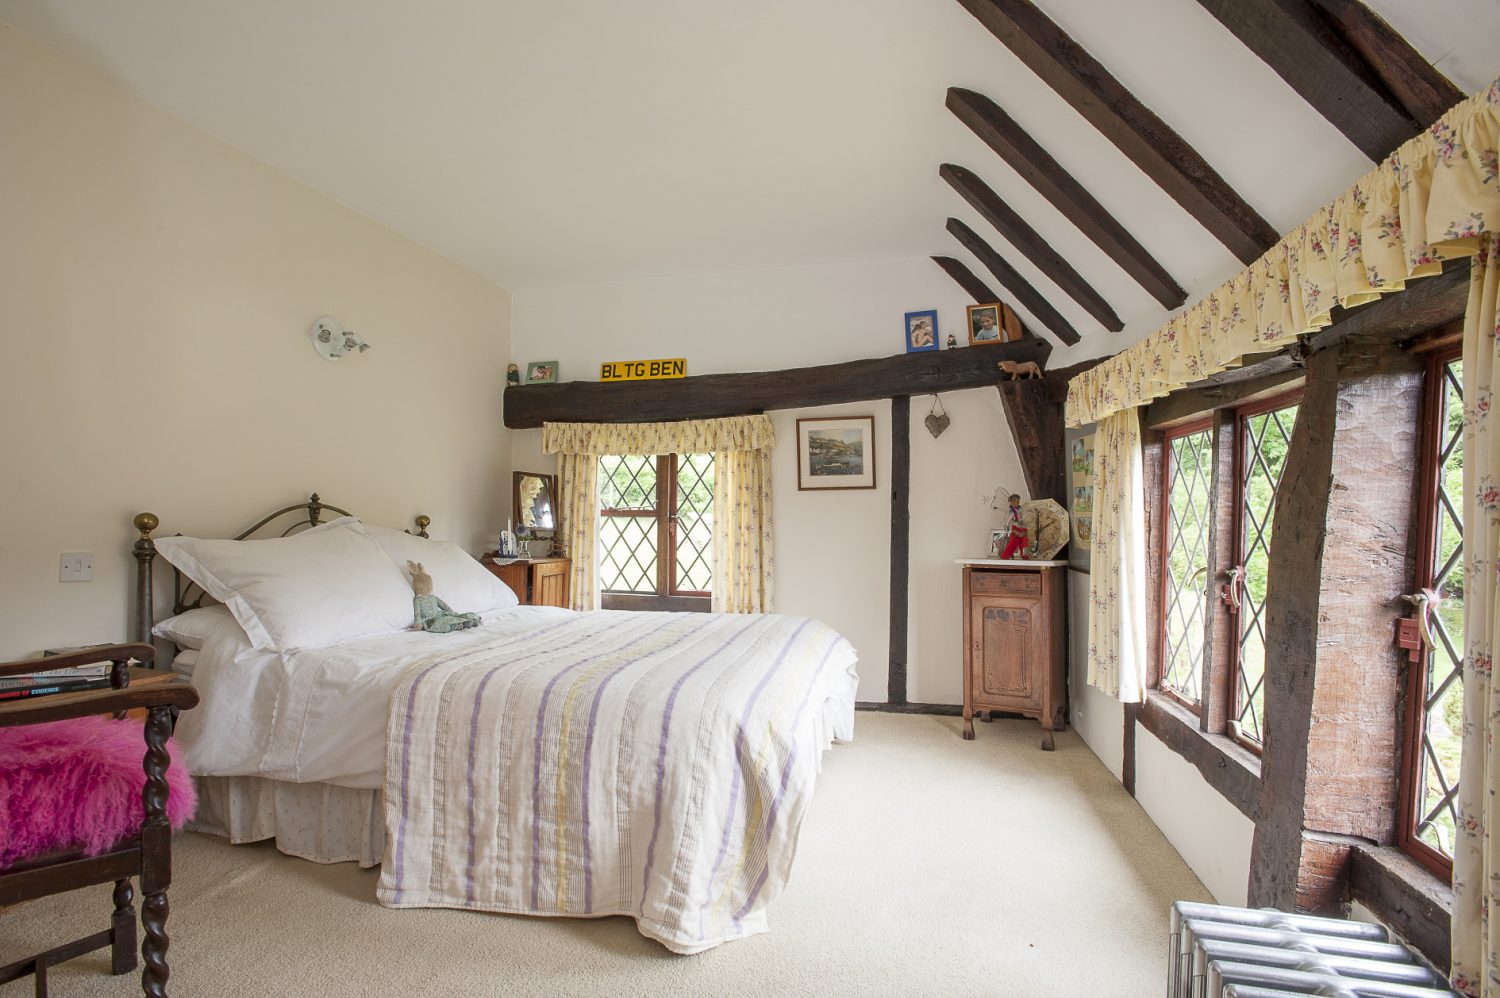 There are two other bedrooms on this floor, all adorable with whitewashed walls and beams, brass beds and vintage bedspreads creating a warren of cosy bolt holes for their now grown-up offspring and visitors alike